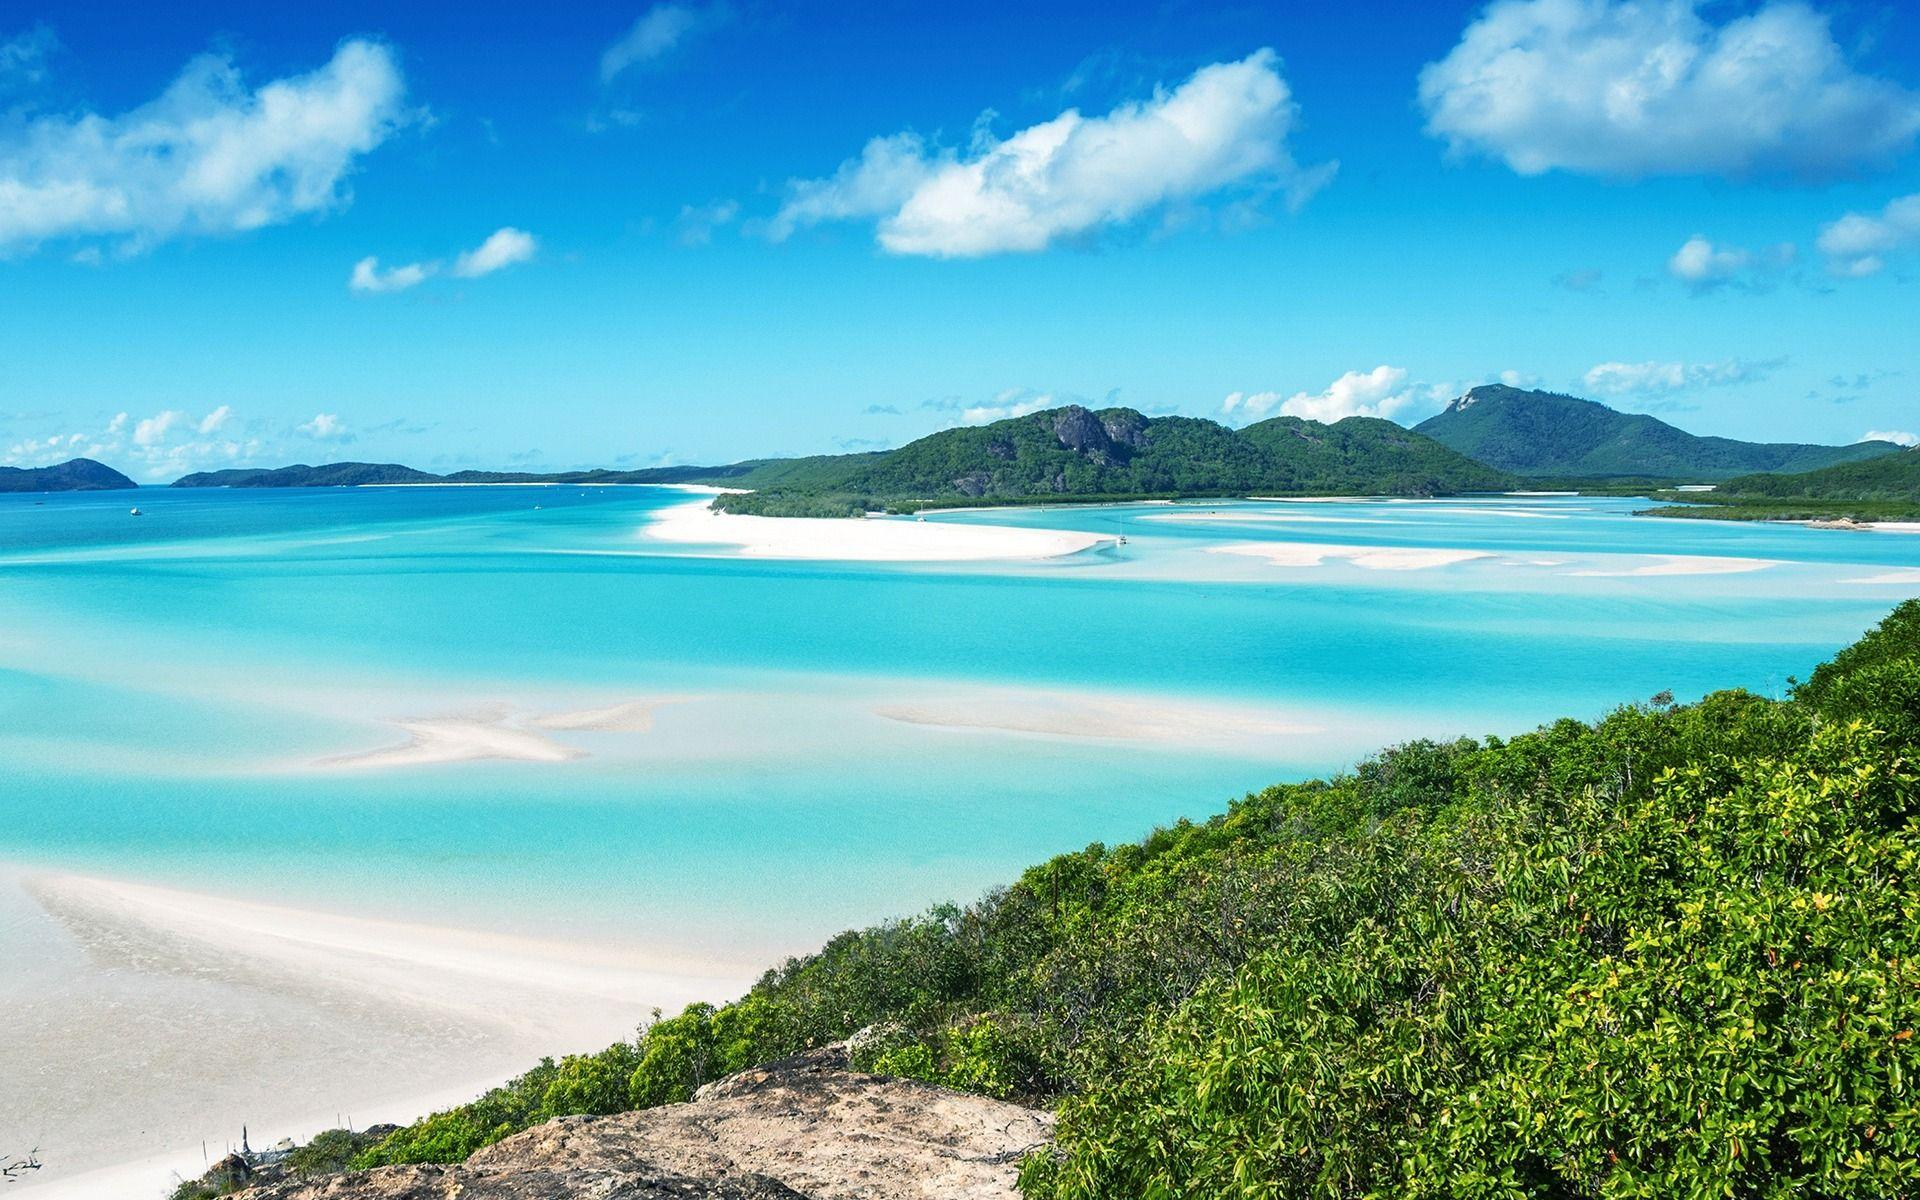 Download wallpapers Whitsunday Island, Australia, tropical island